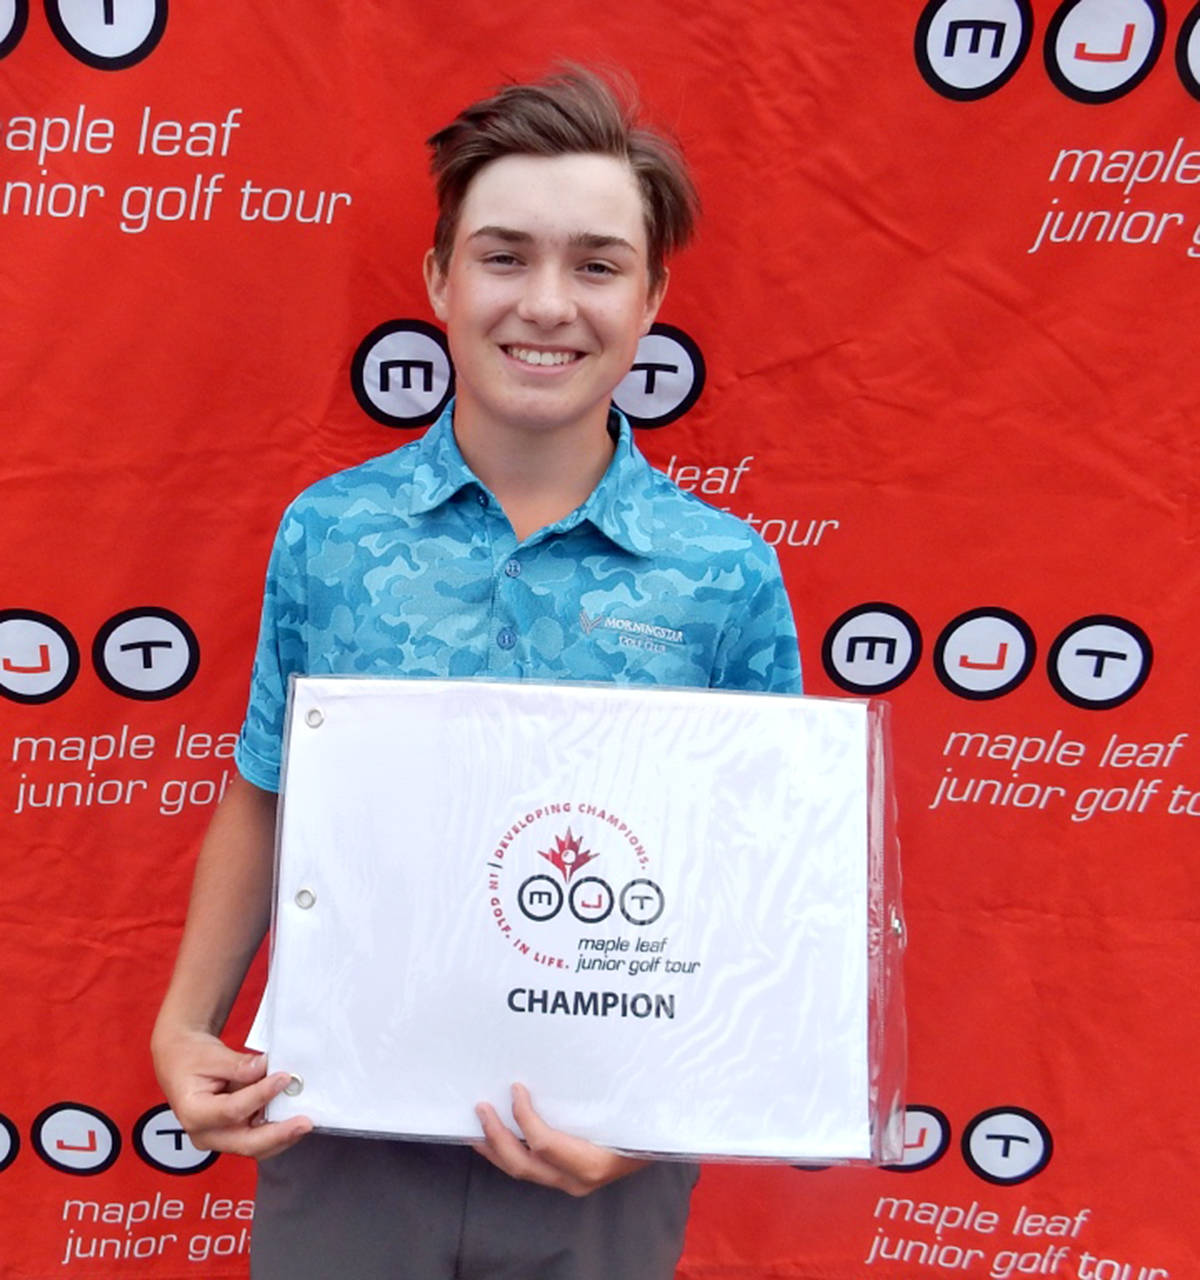 Caleb Davies, 16, of Langley, fired rounds of 70 and 69 (139) for not only his first MJT title but also low overall score of the tournament in Chilliwack on July 6-7. (MJT)